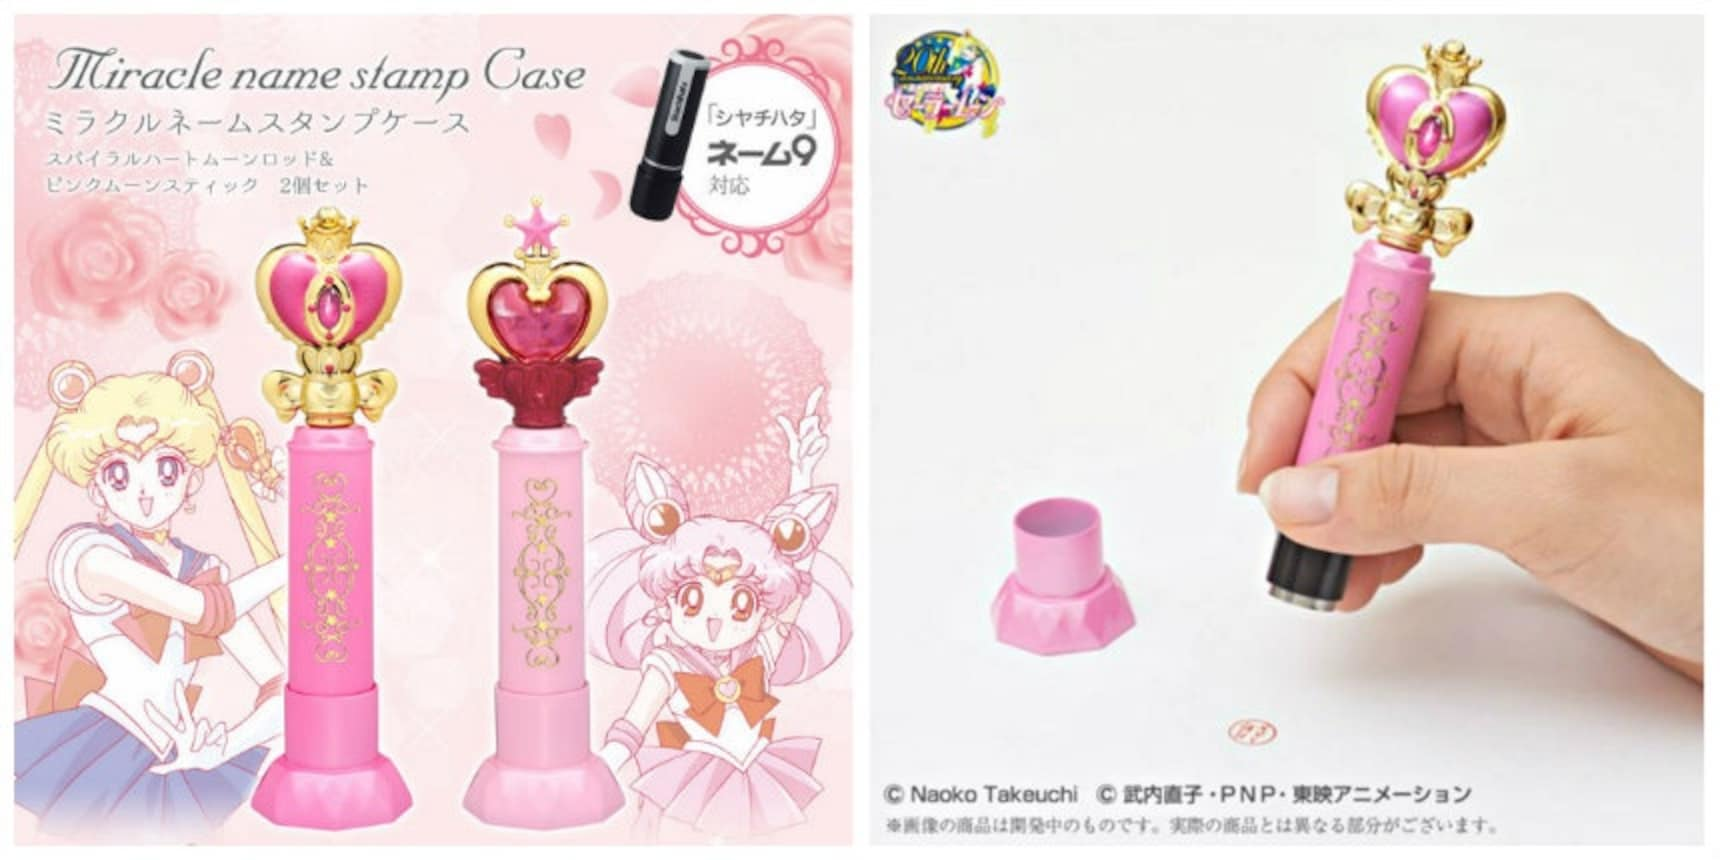 Make Your Mark with Sailor Moon Stamps!